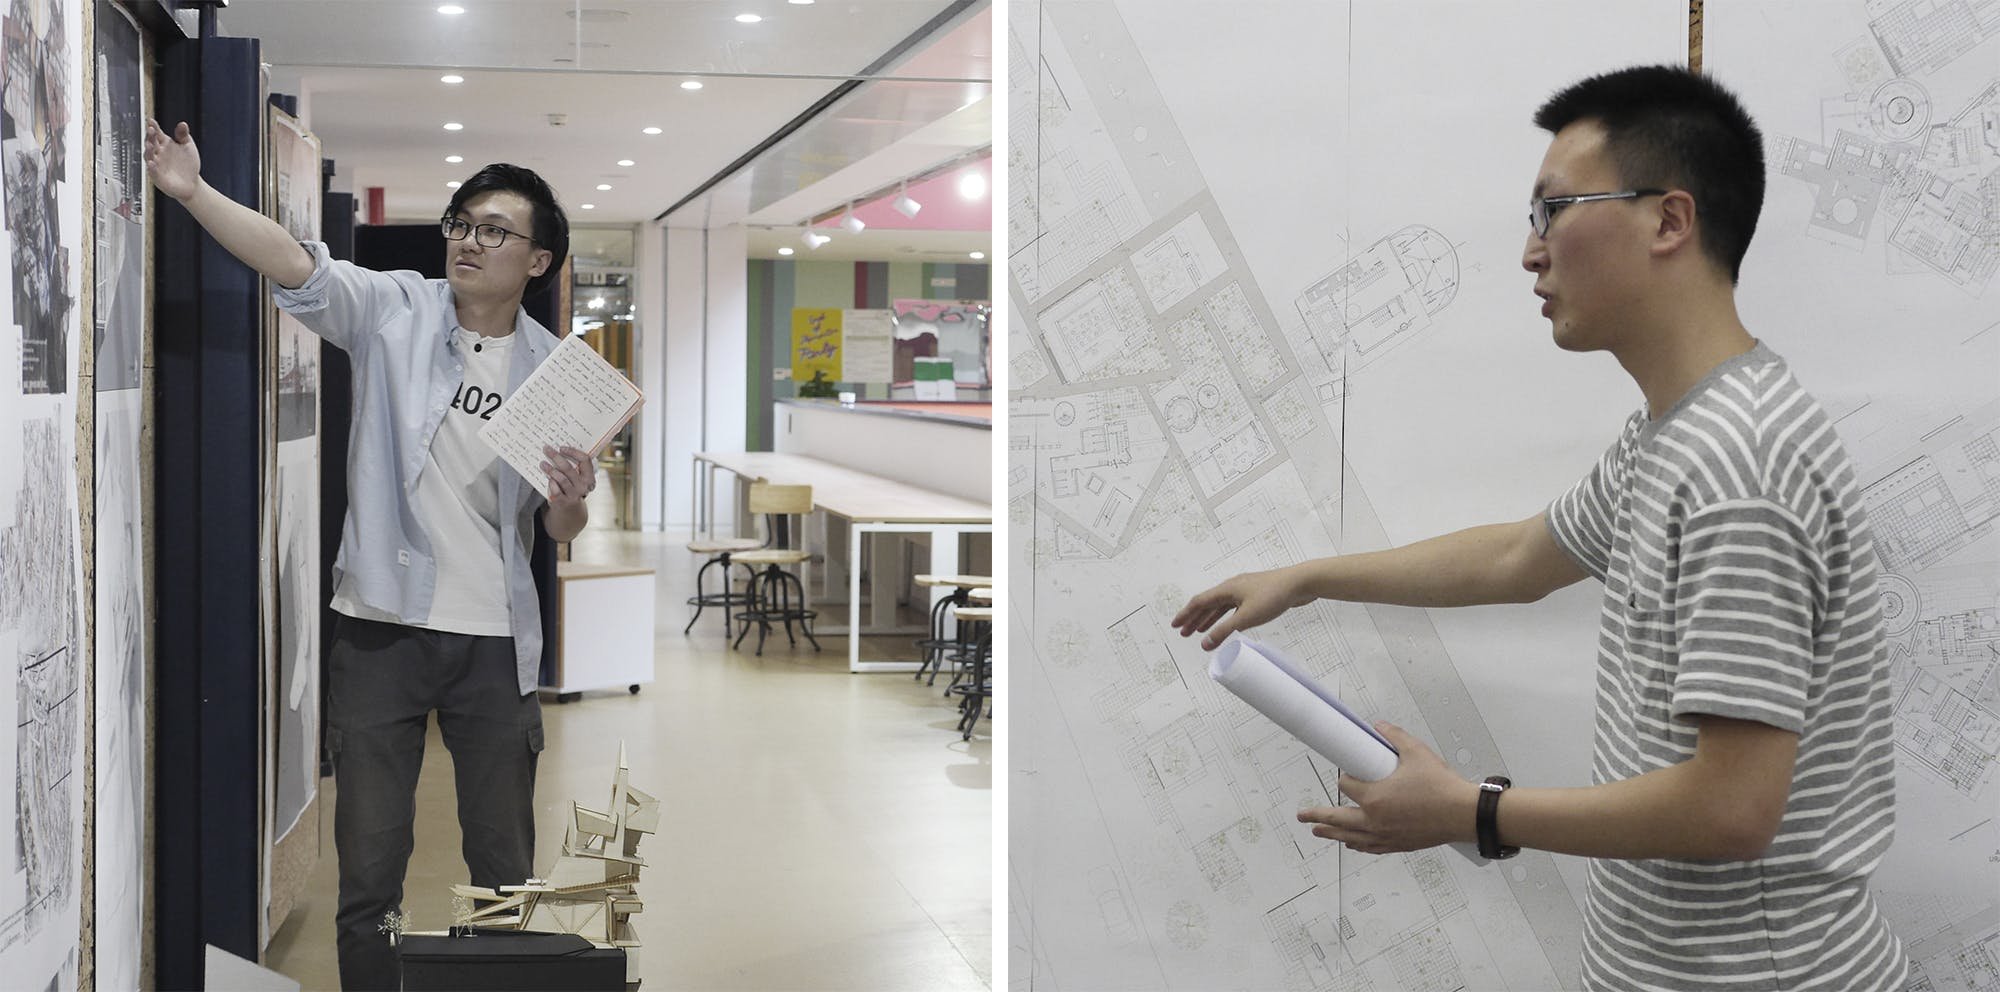 Li Shaokang (left) and Shao Fuwei (right) at their Final Project presentations at XJTLU's Department of Architecture in June 2017.